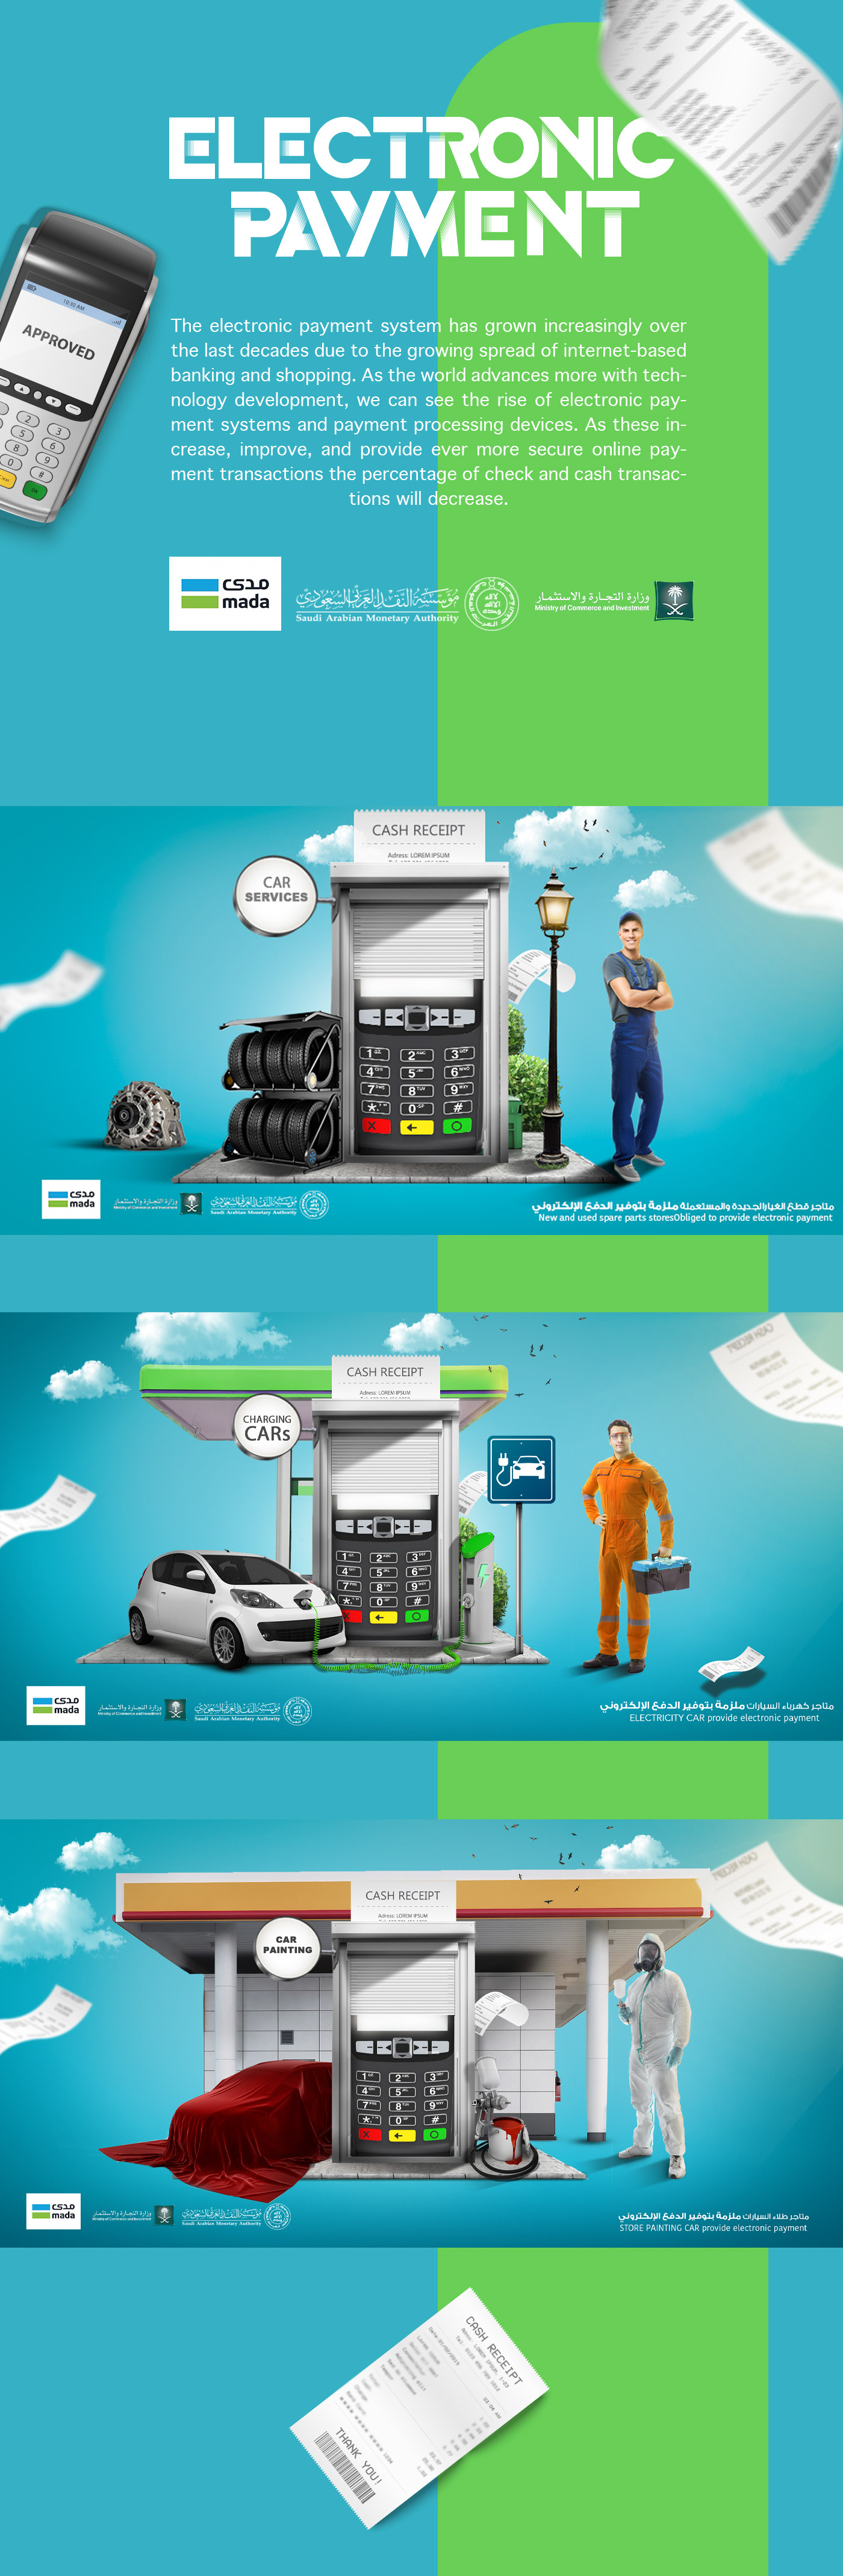 design ads social media payment panking featured